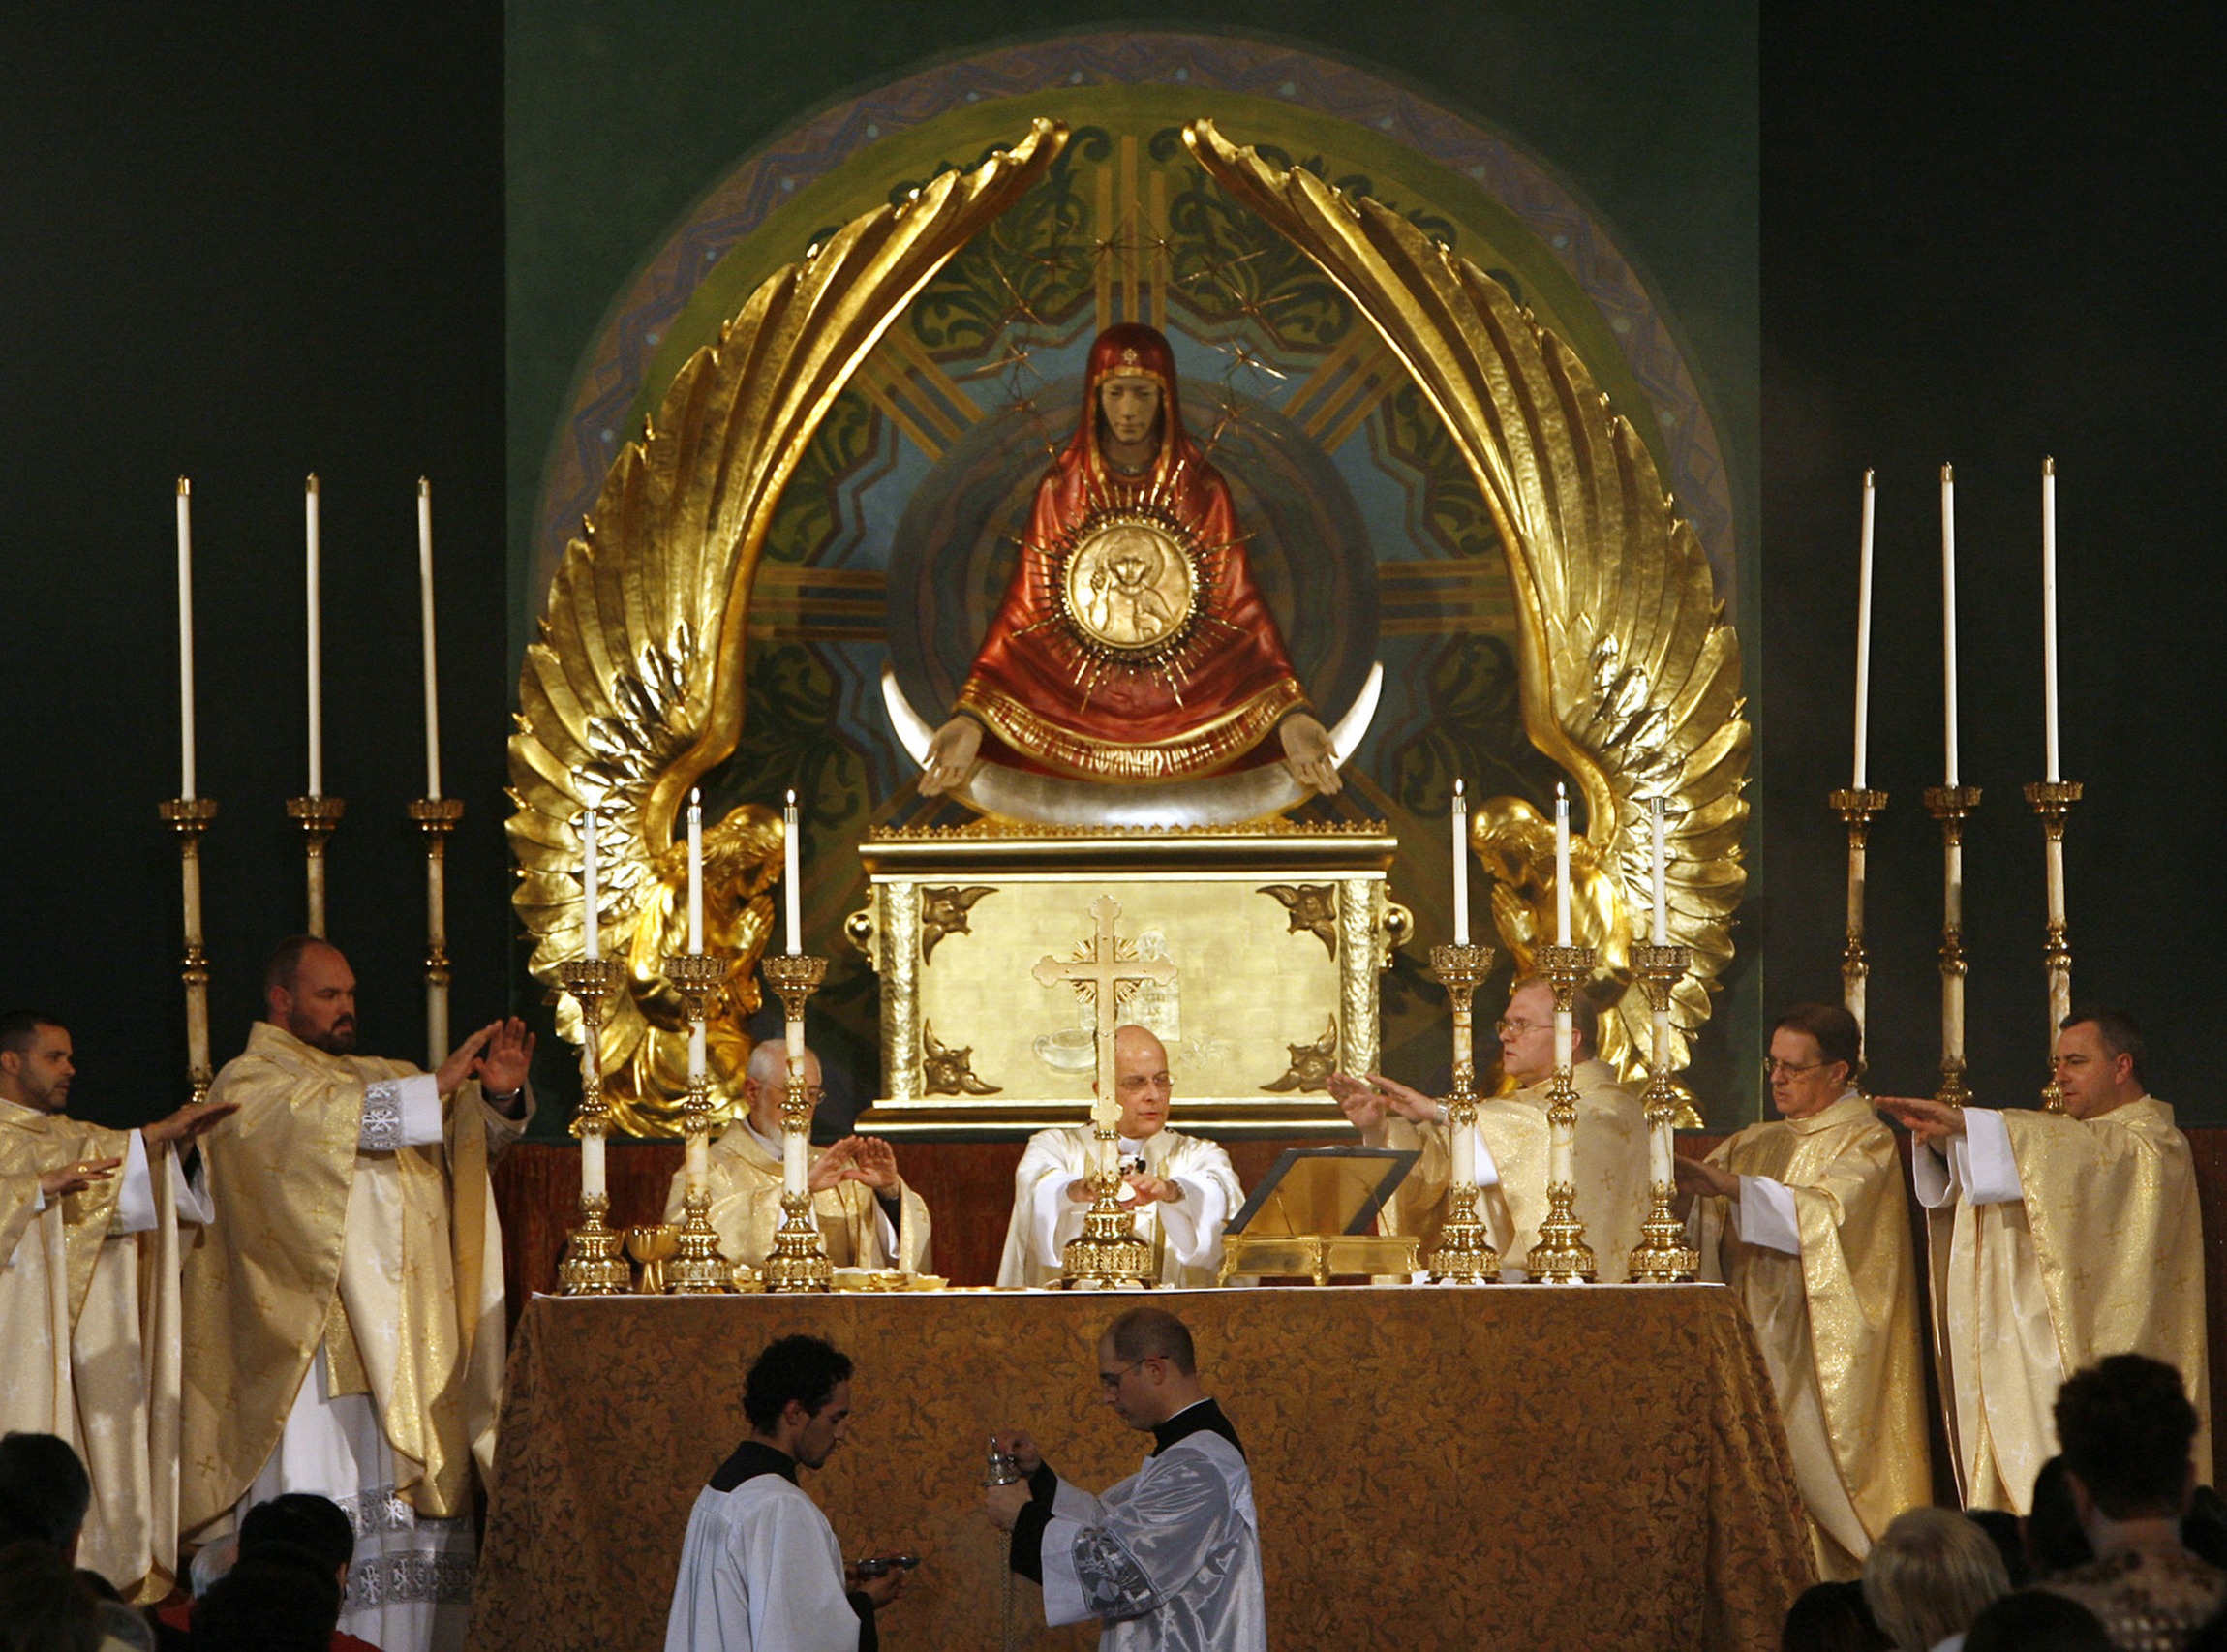 Cardinal Francis E. George of Chicago celebrates the Mass with area priests during the blessing of the iconic monstrance of Our Lady of the Sign, Ark of Mercy at St. Stanislaus Kostka Church in Chicago May 31. The nine-foot high, hand carved and decorated, monstrance is believed to be the largest in the world. It will be the focal point of the future Sanctuary of Divine Mercy in the Archdiocese of Chicago. (CNS/Karen Callaway, Catholic New World) (June 10, 2008) See MONSTRANCE June 10, 2008.